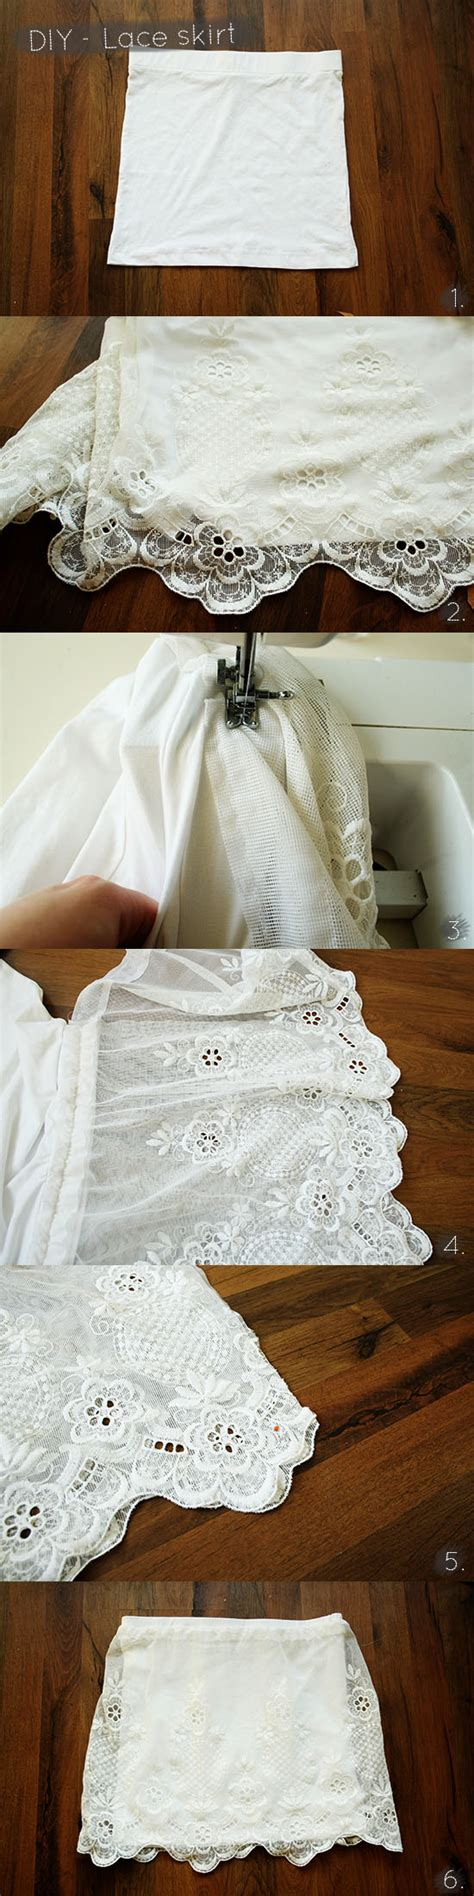 how to sew lace curtains diy lace skirt by wilma